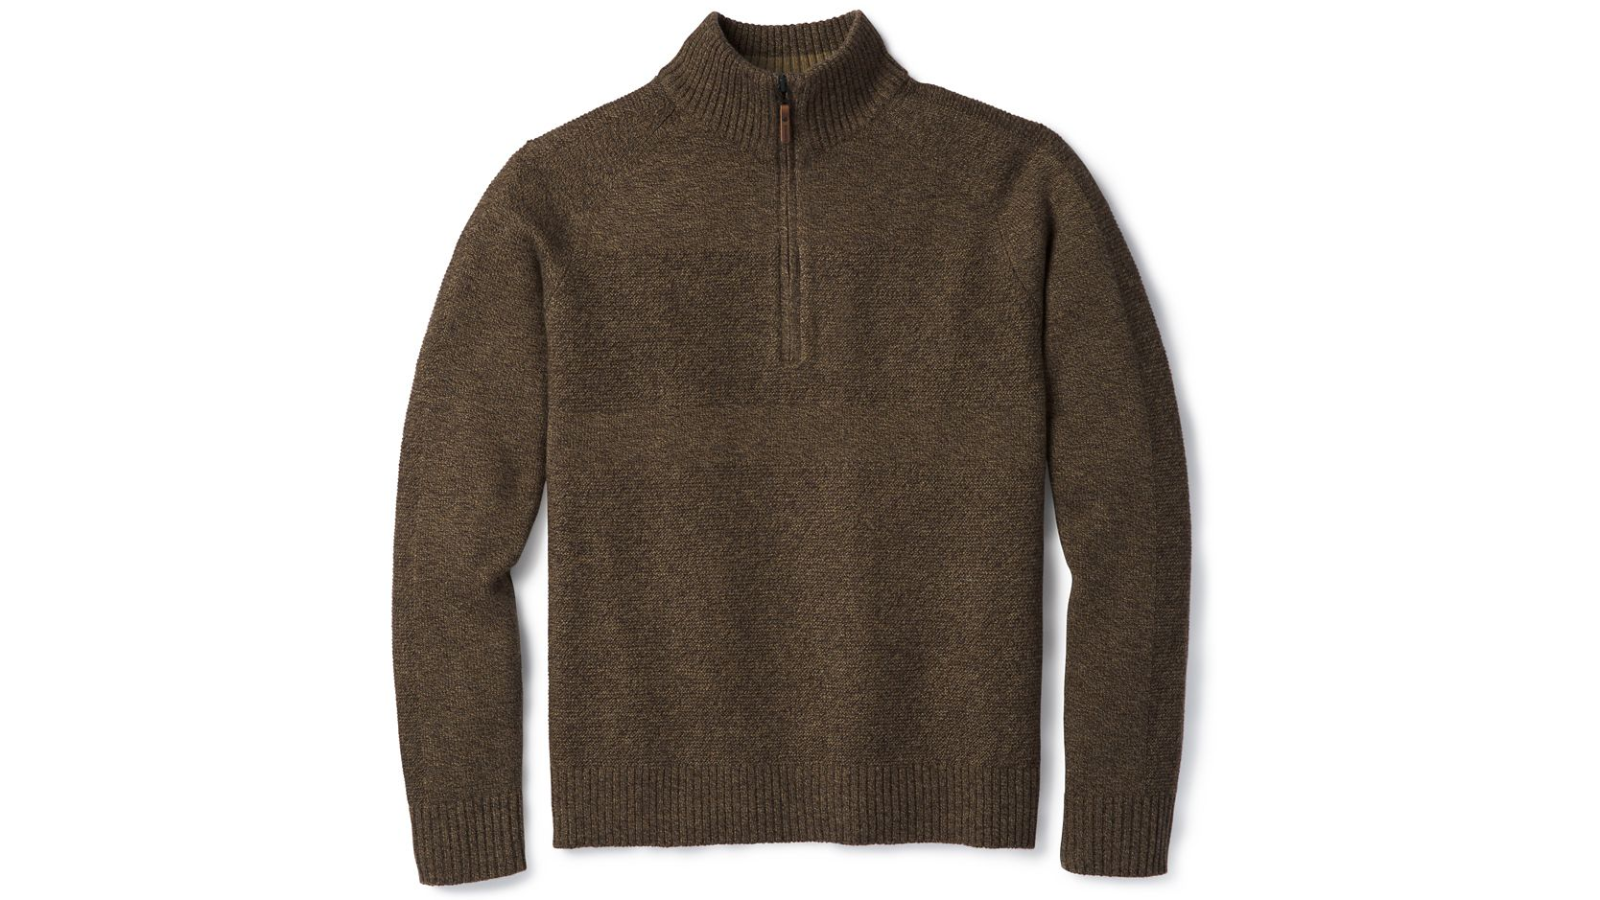 3ce12f1d2940bf Smartwool Ripple Ridge Half Zip Sweater - Mens, Up to 48% Off with Free S&H  — CampSaver